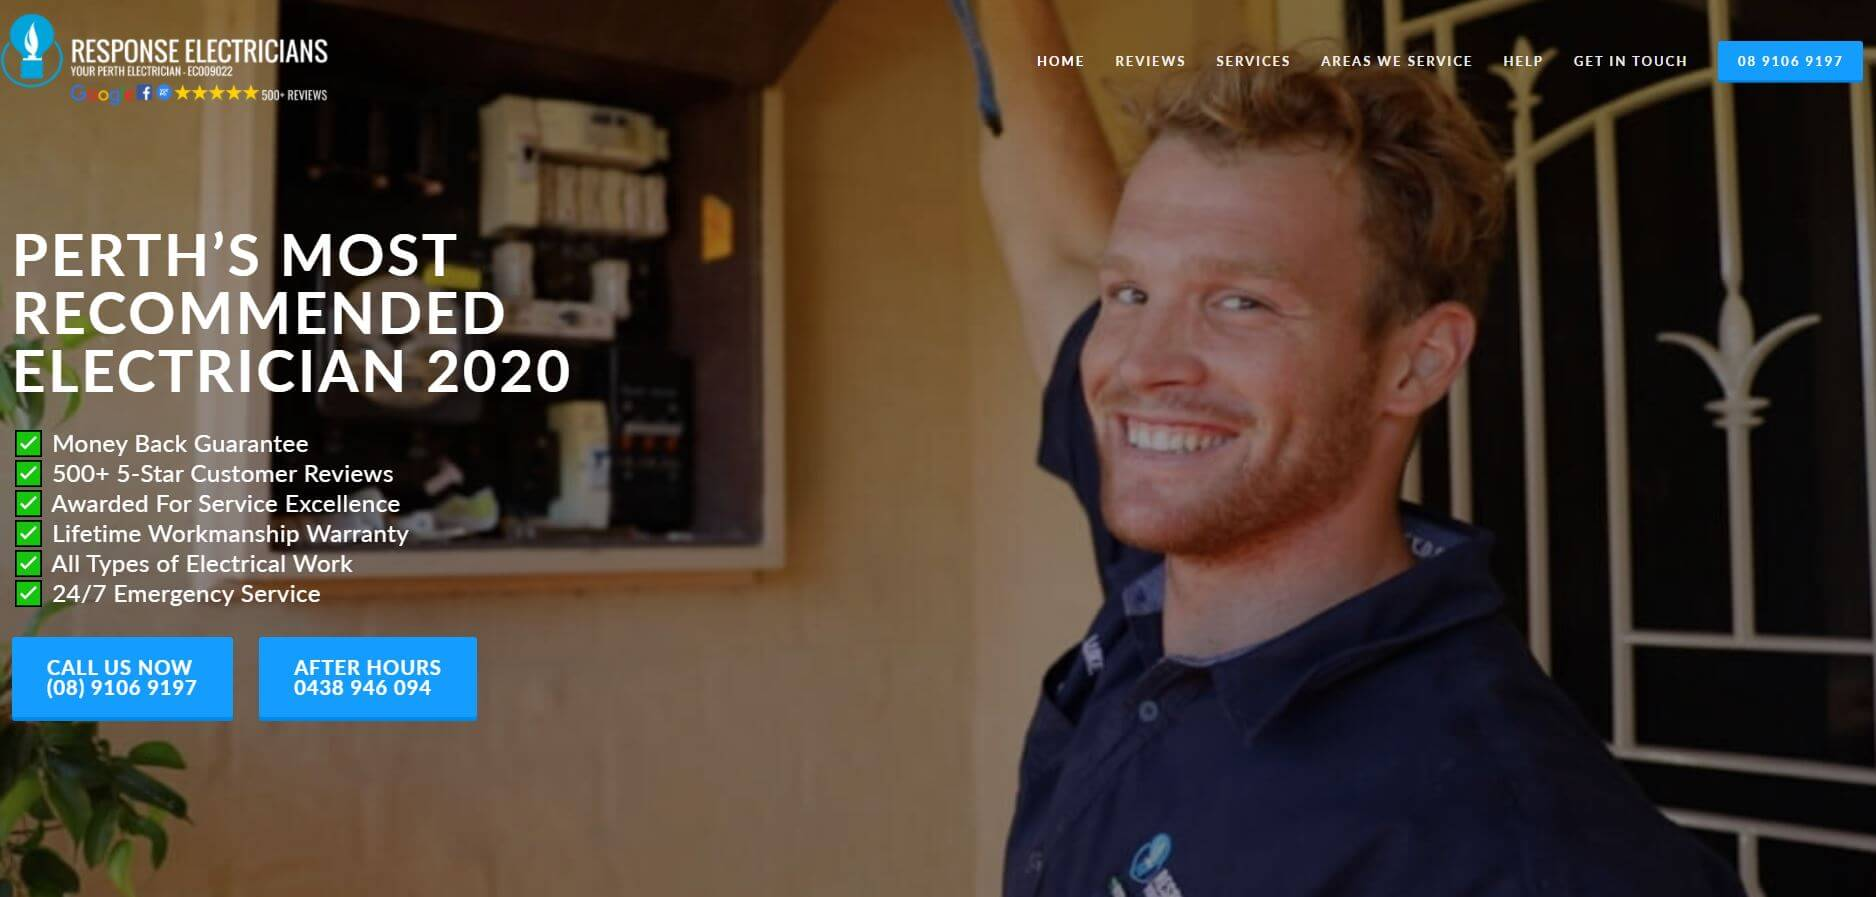 response fire electrical servicesl electricians in perth